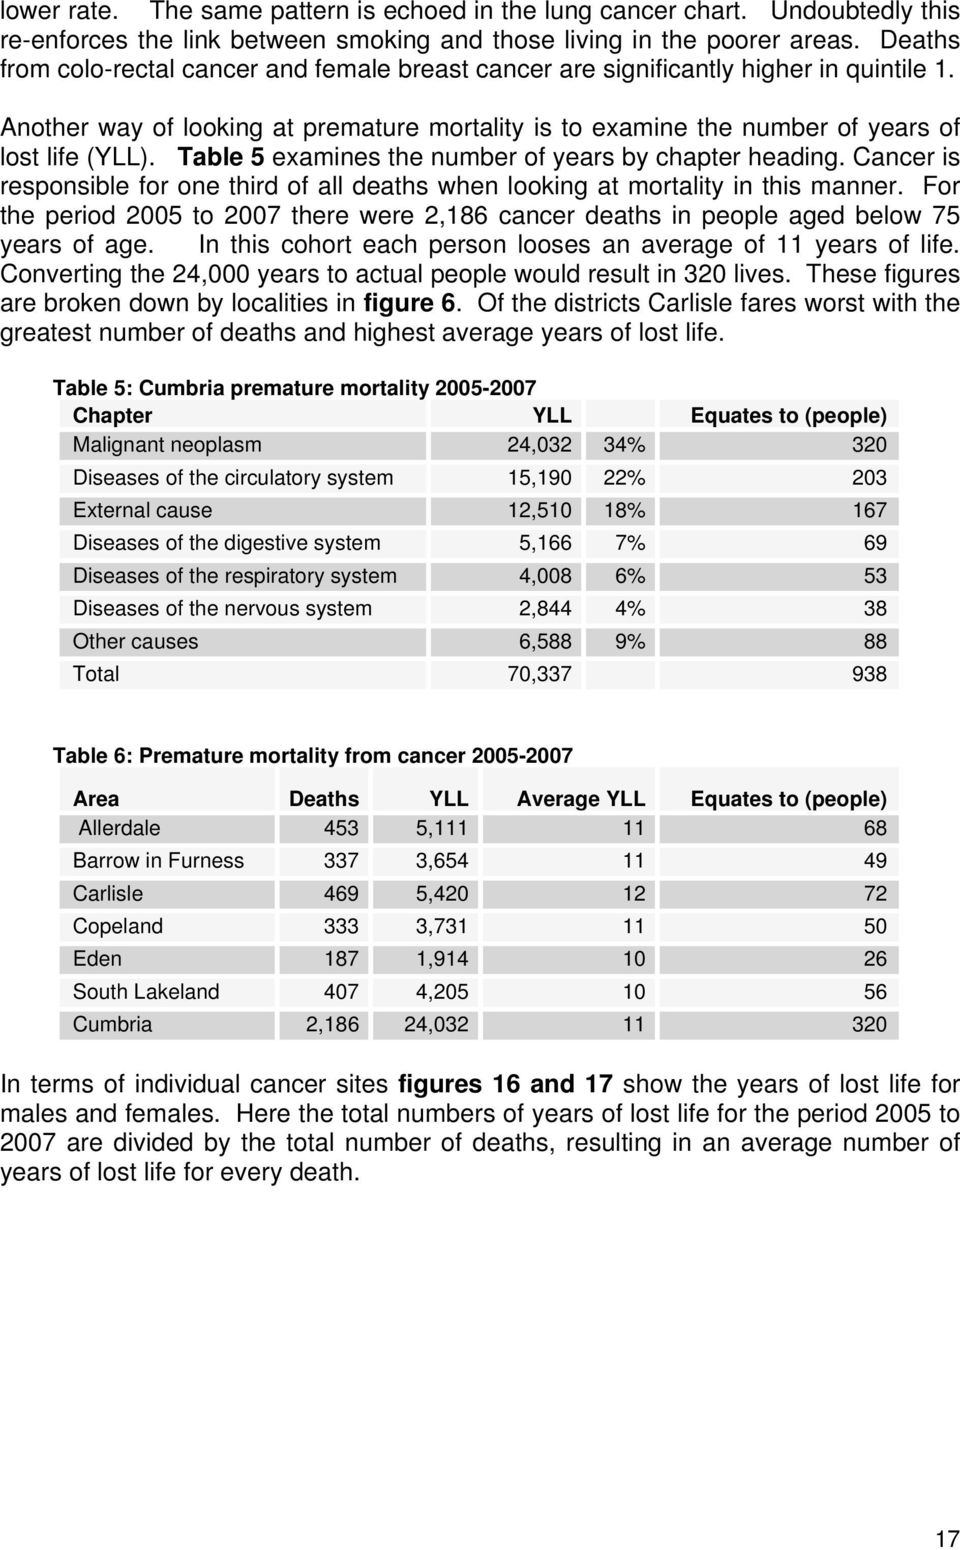 Table 5 examines the number of years by chapter heading. Cancer is responsible for one third of all deaths when looking at mortality in this manner.